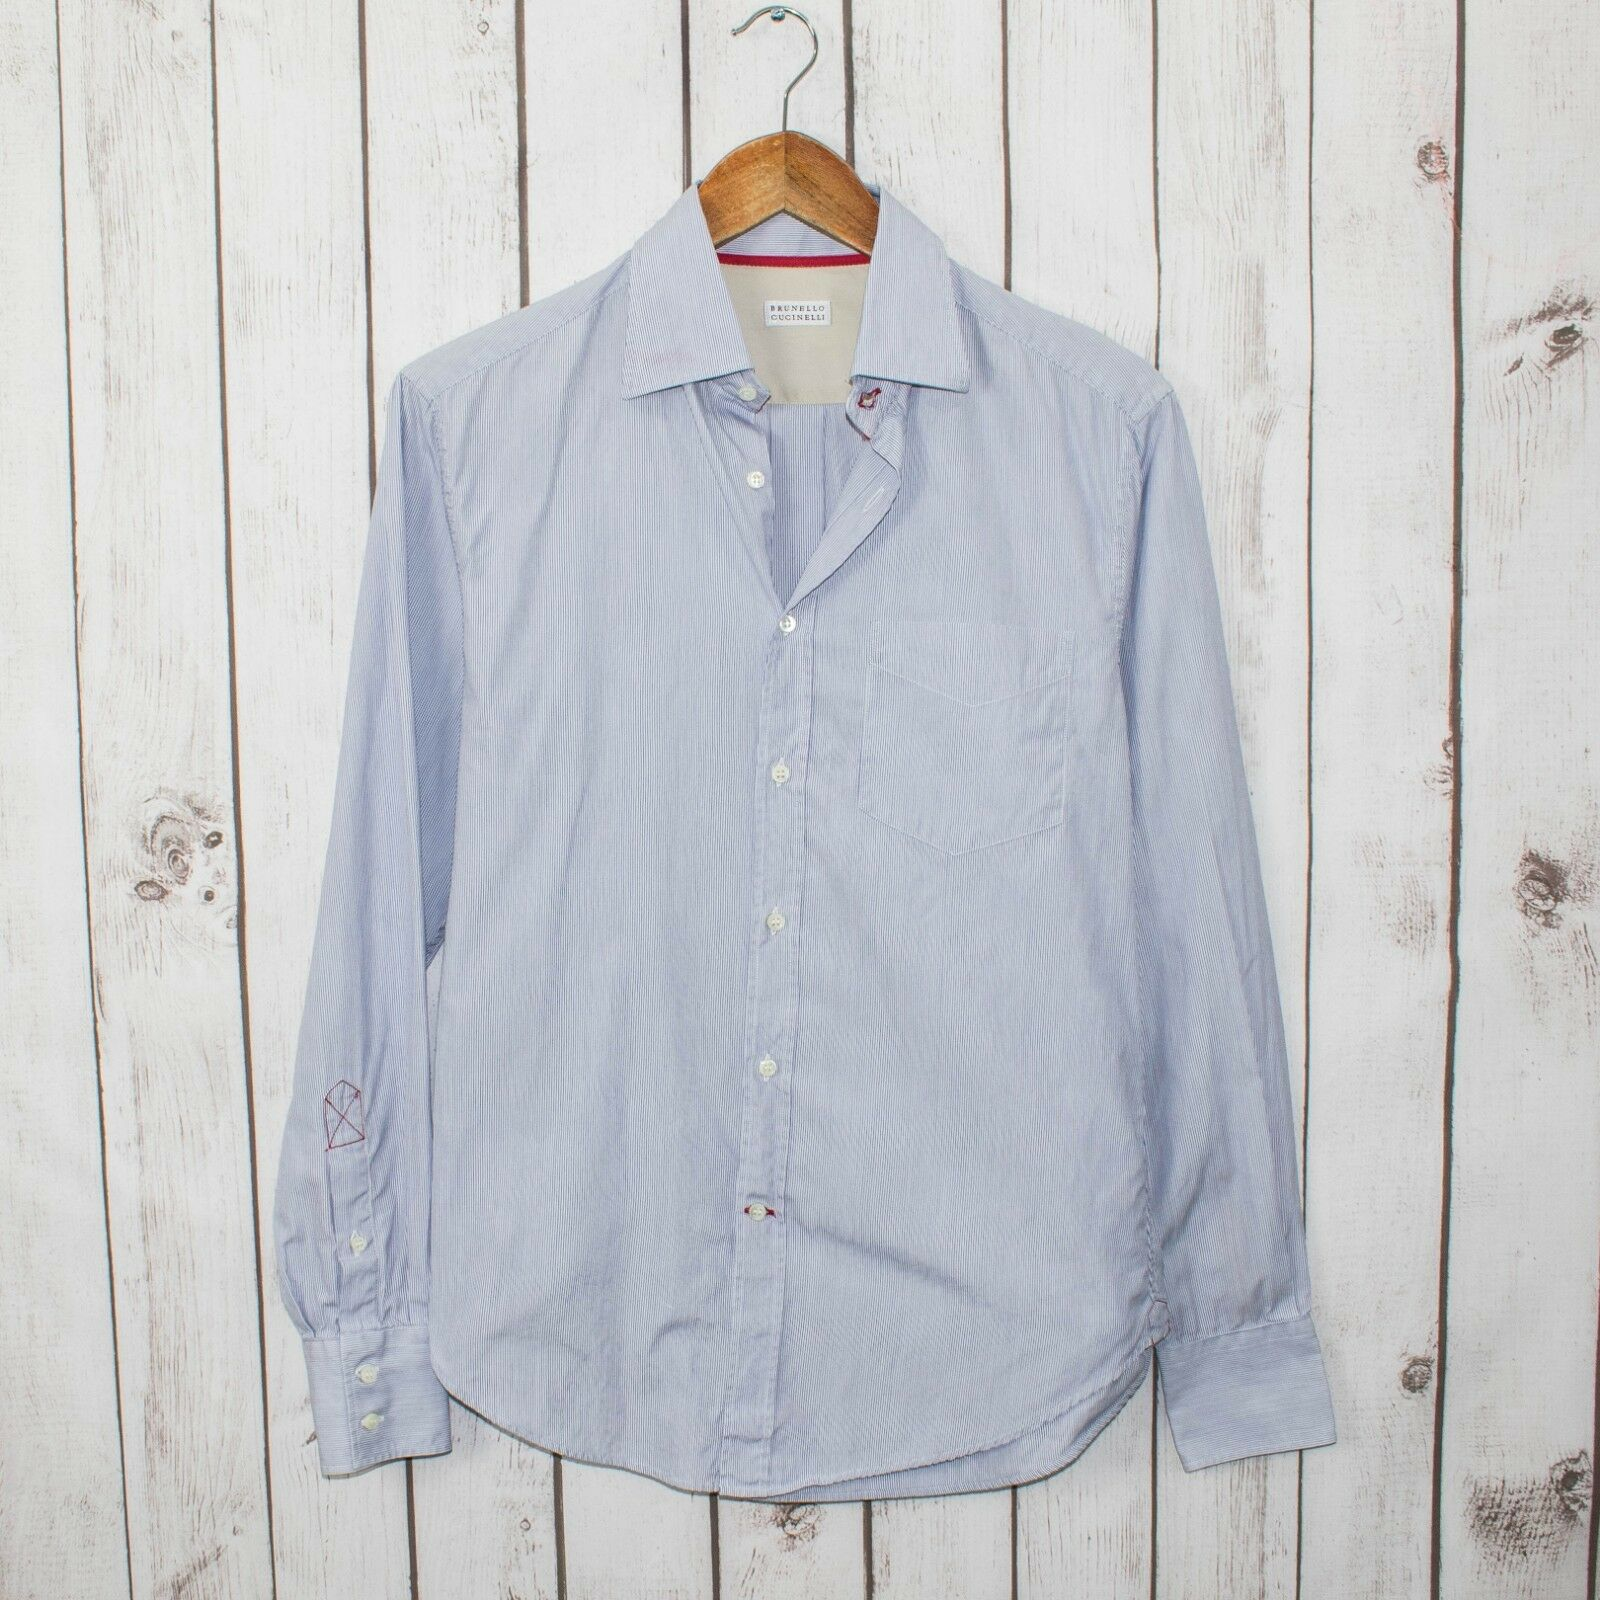 BRUNELLO CUCINELLI Men's Button Front Shirt bluee Striped Sz Small Made in